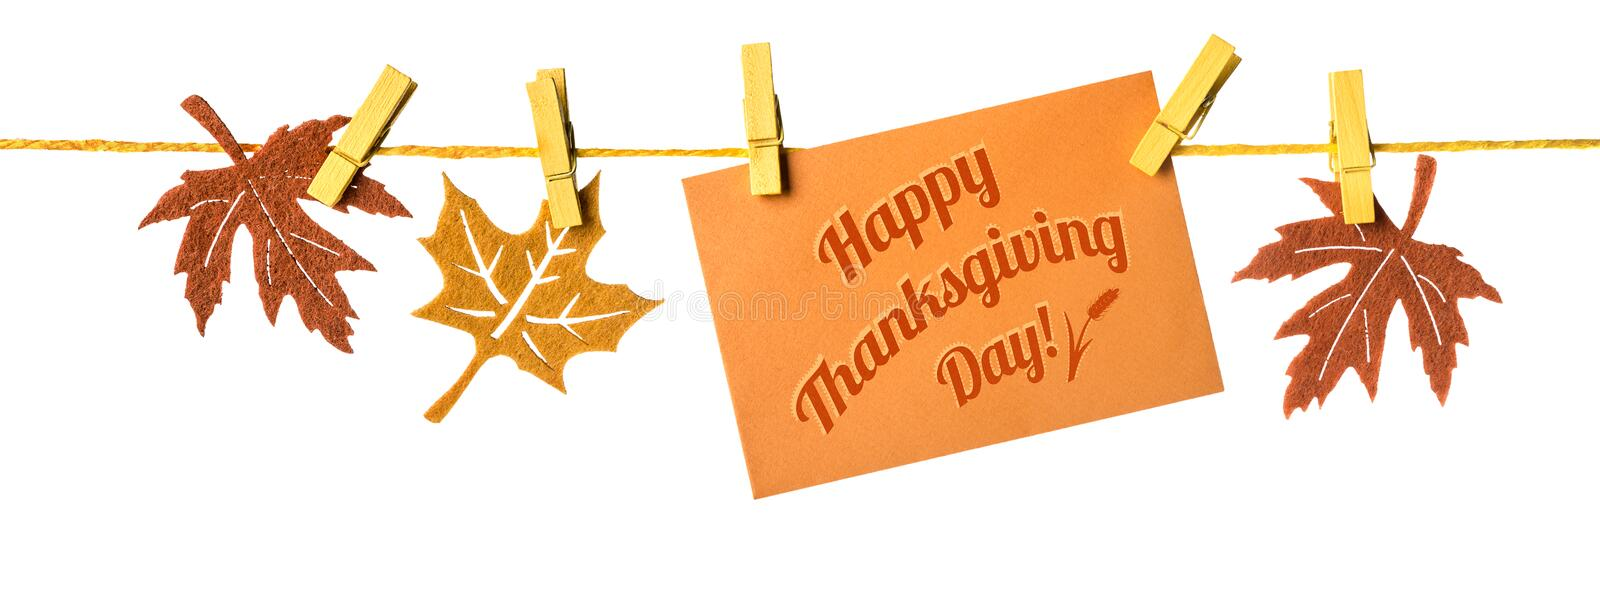 Happy Thanksgiving! Autumn decorations and greeting card on a rope stock photo